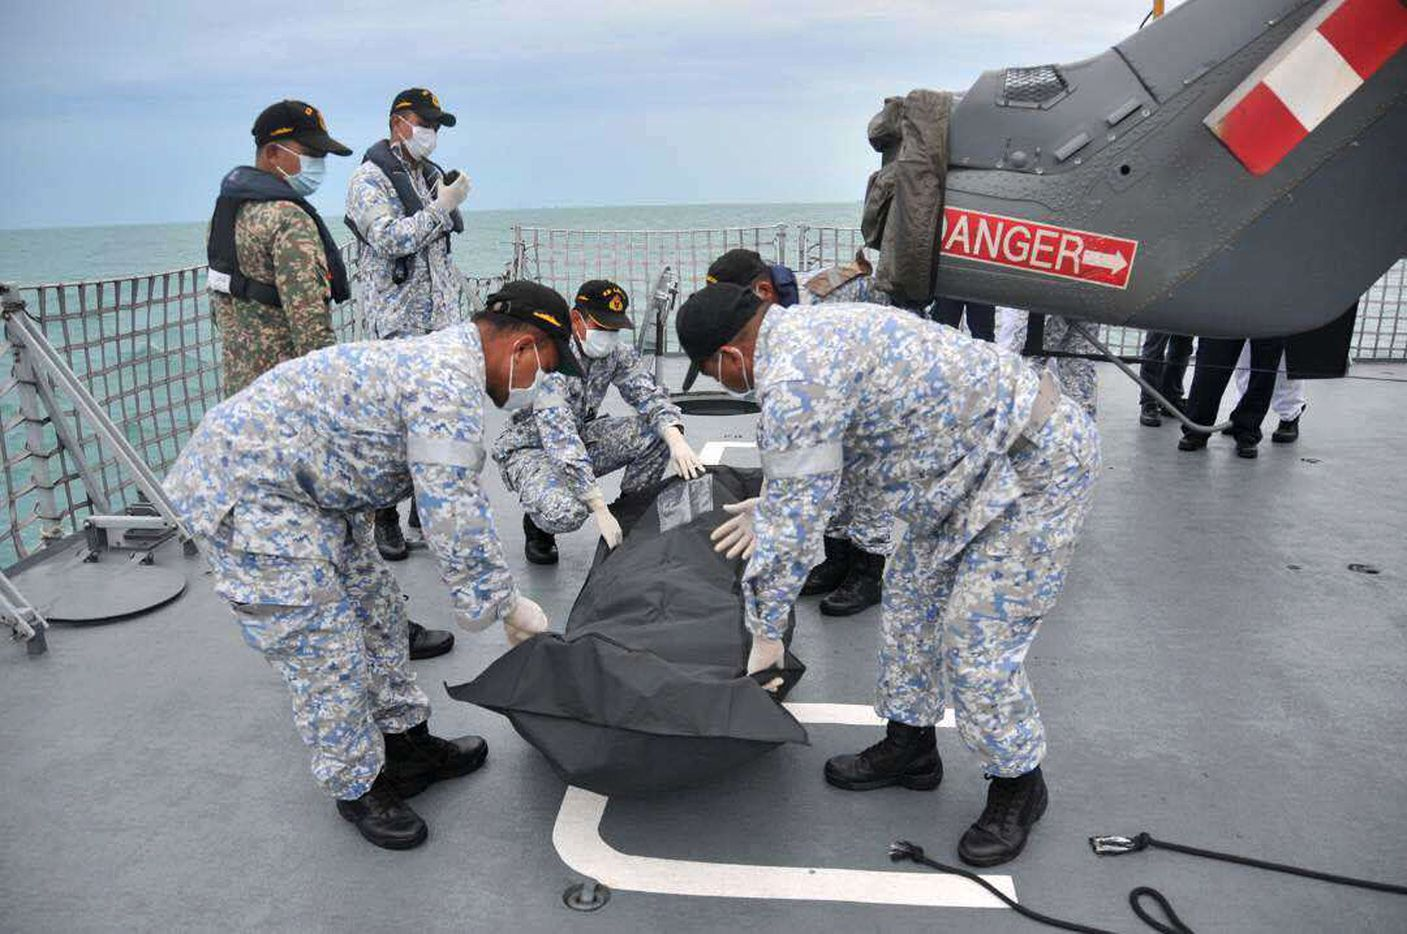 Malaysian navy sailors cover an unidentified body after it was found in the water off the coast of Malaysia on Tuesday.